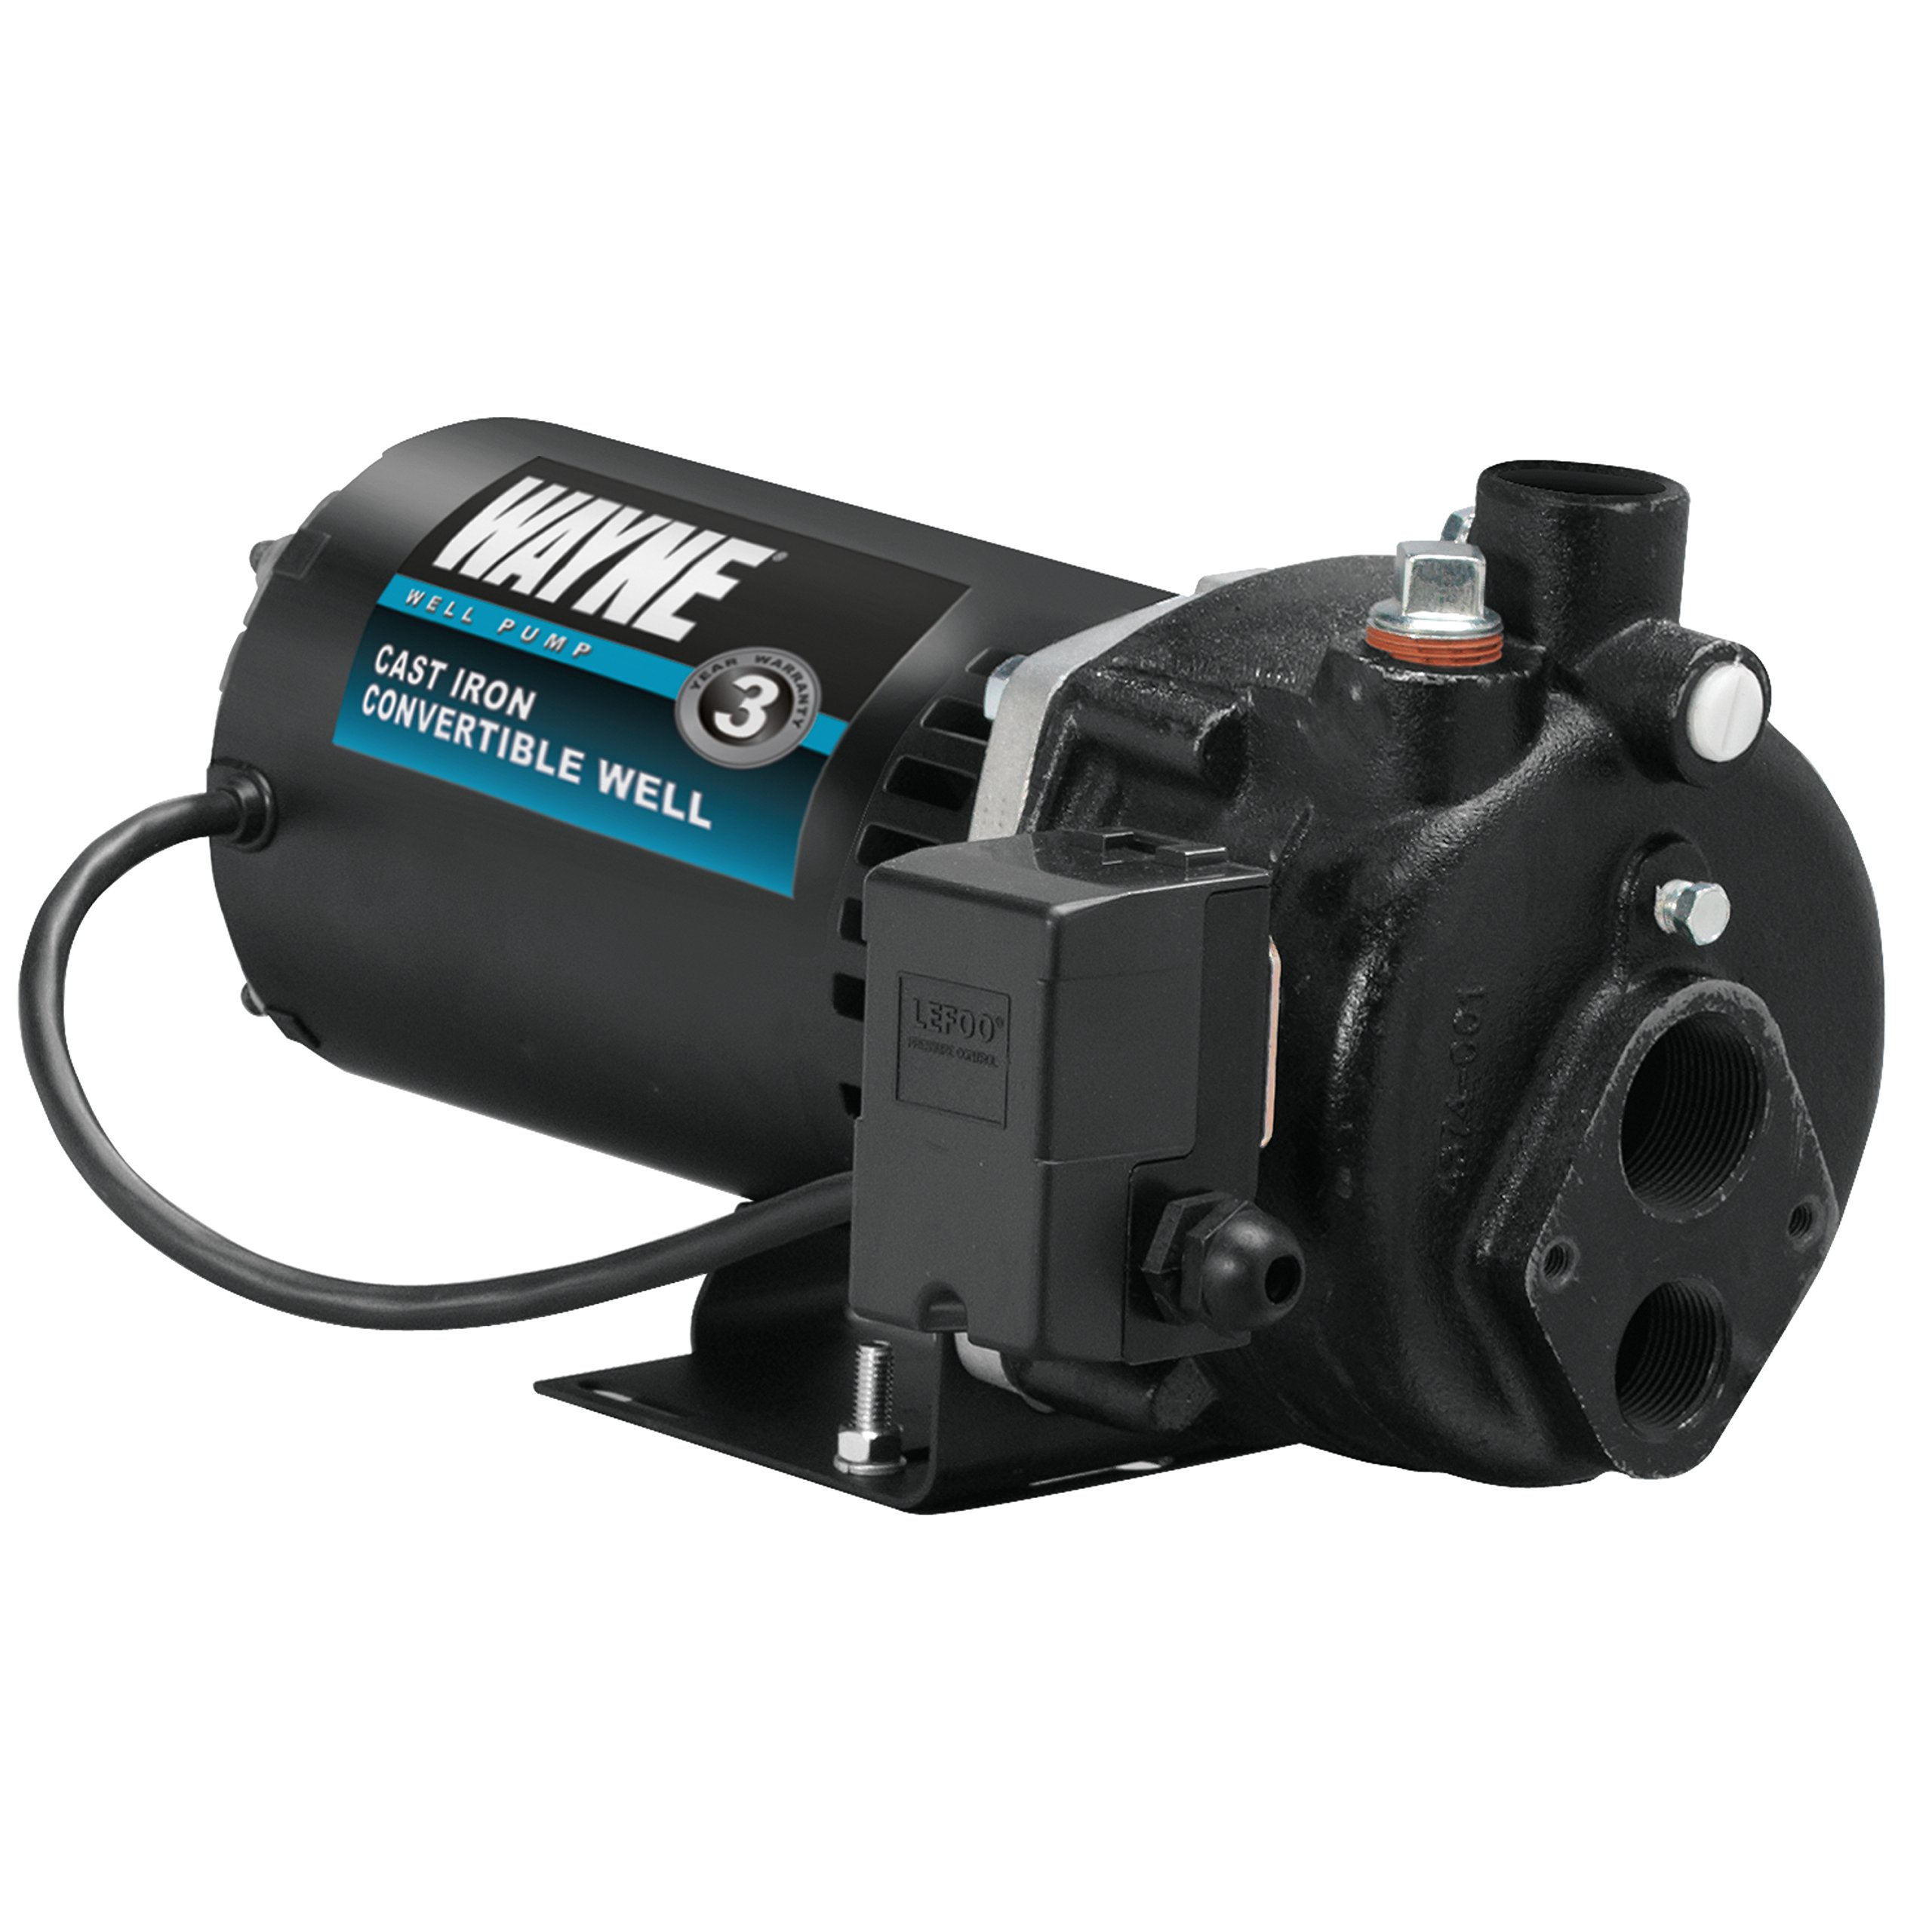 WAYNE CWS50 1/2 HP Cast Iron Convertible Well Jet Pump for Wells up to 90 ft. by Wayne